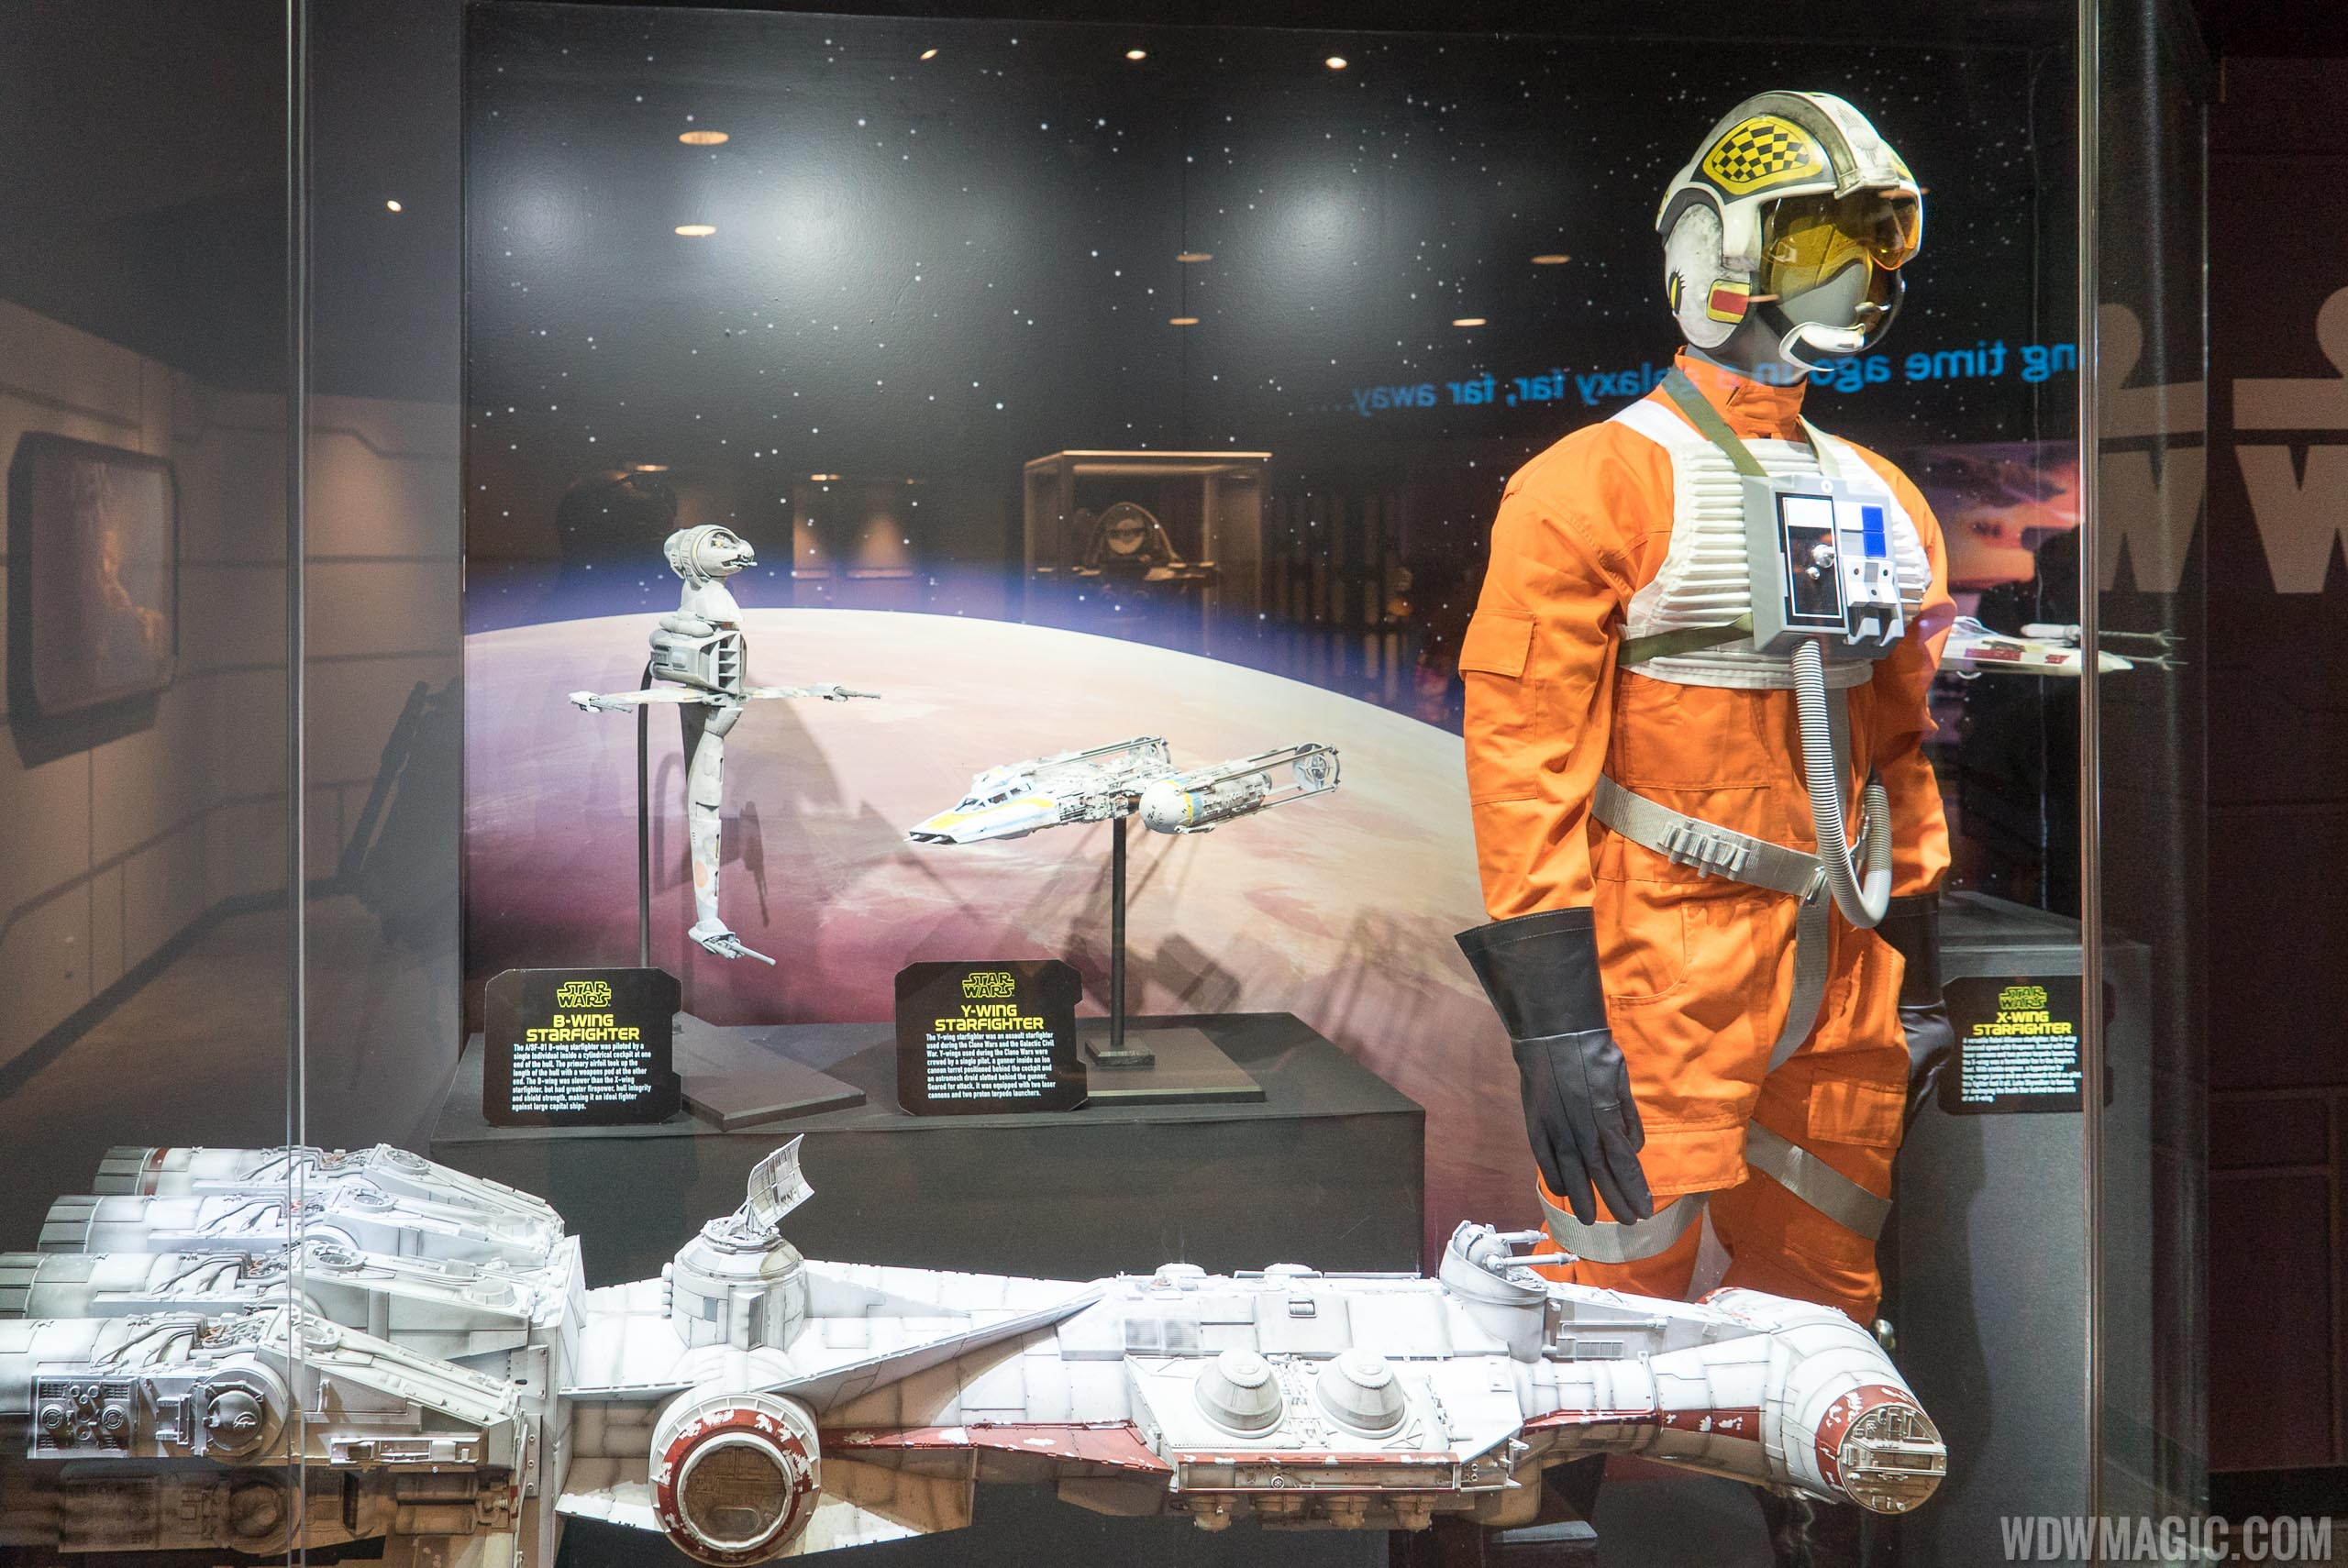 Star Wars Launch Bay - Celebration Gallery props